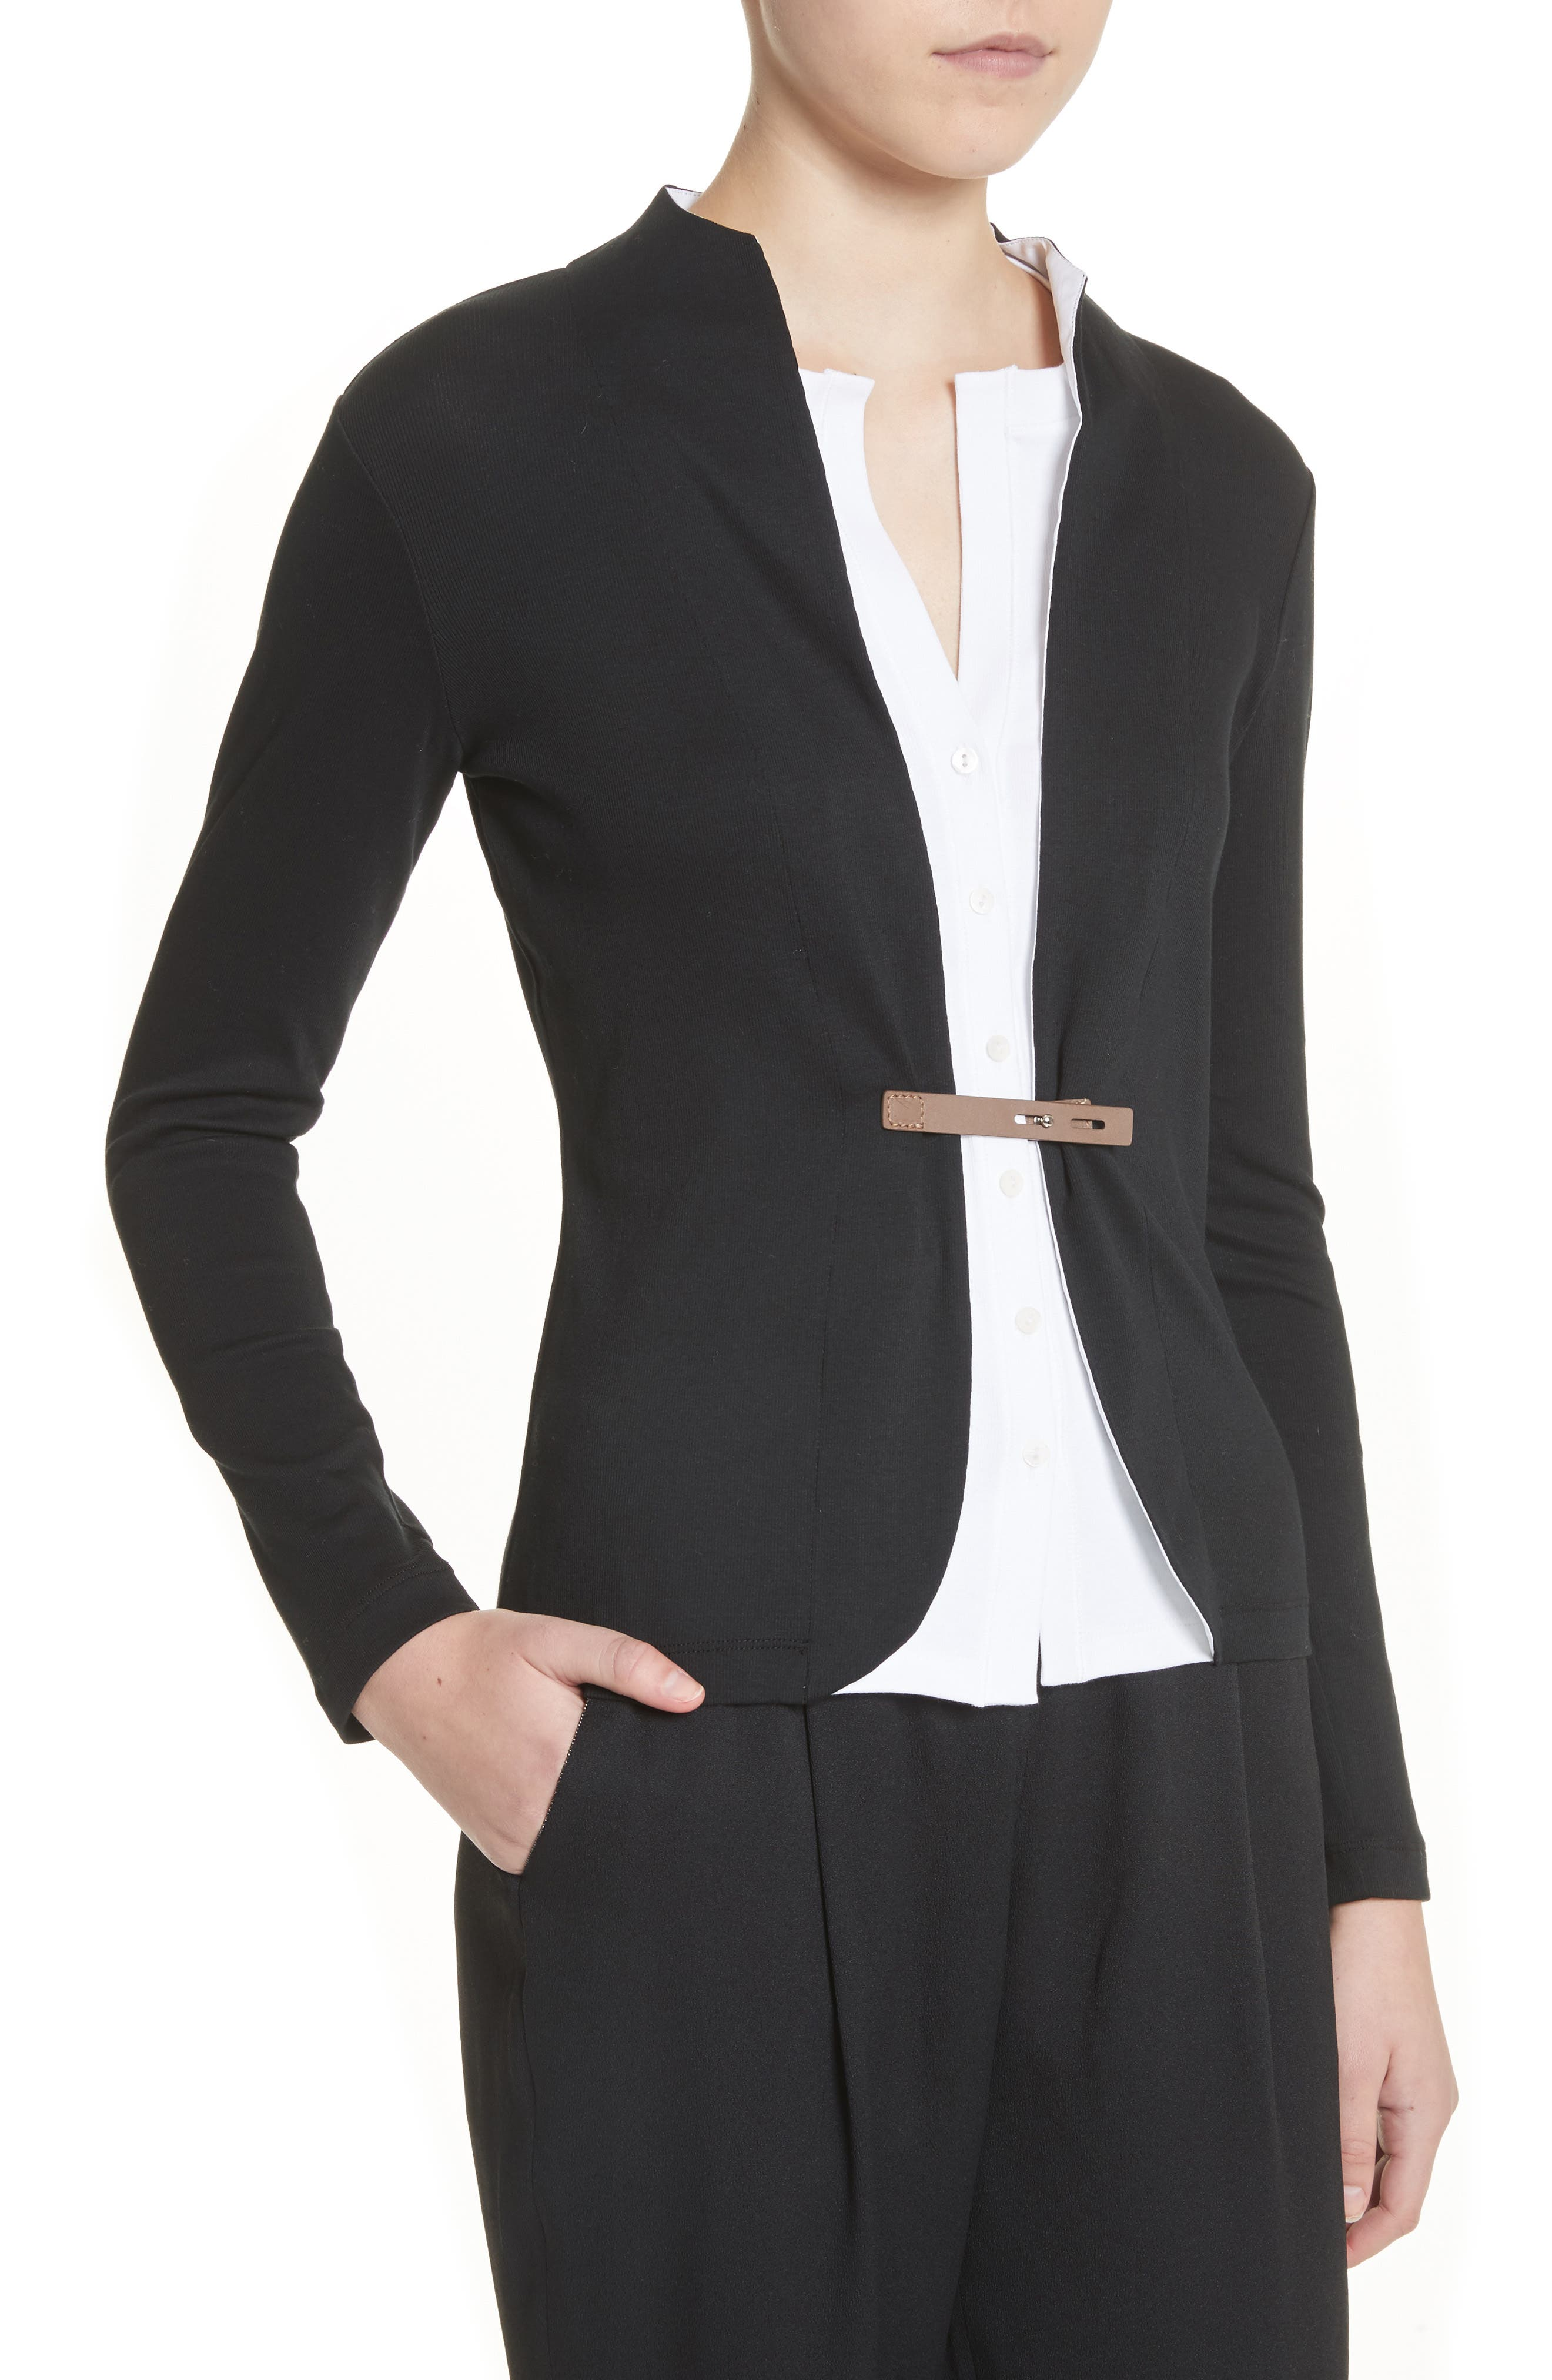 Cotton Blend Cardigan with Insert,                             Alternate thumbnail 3, color,                             Black White